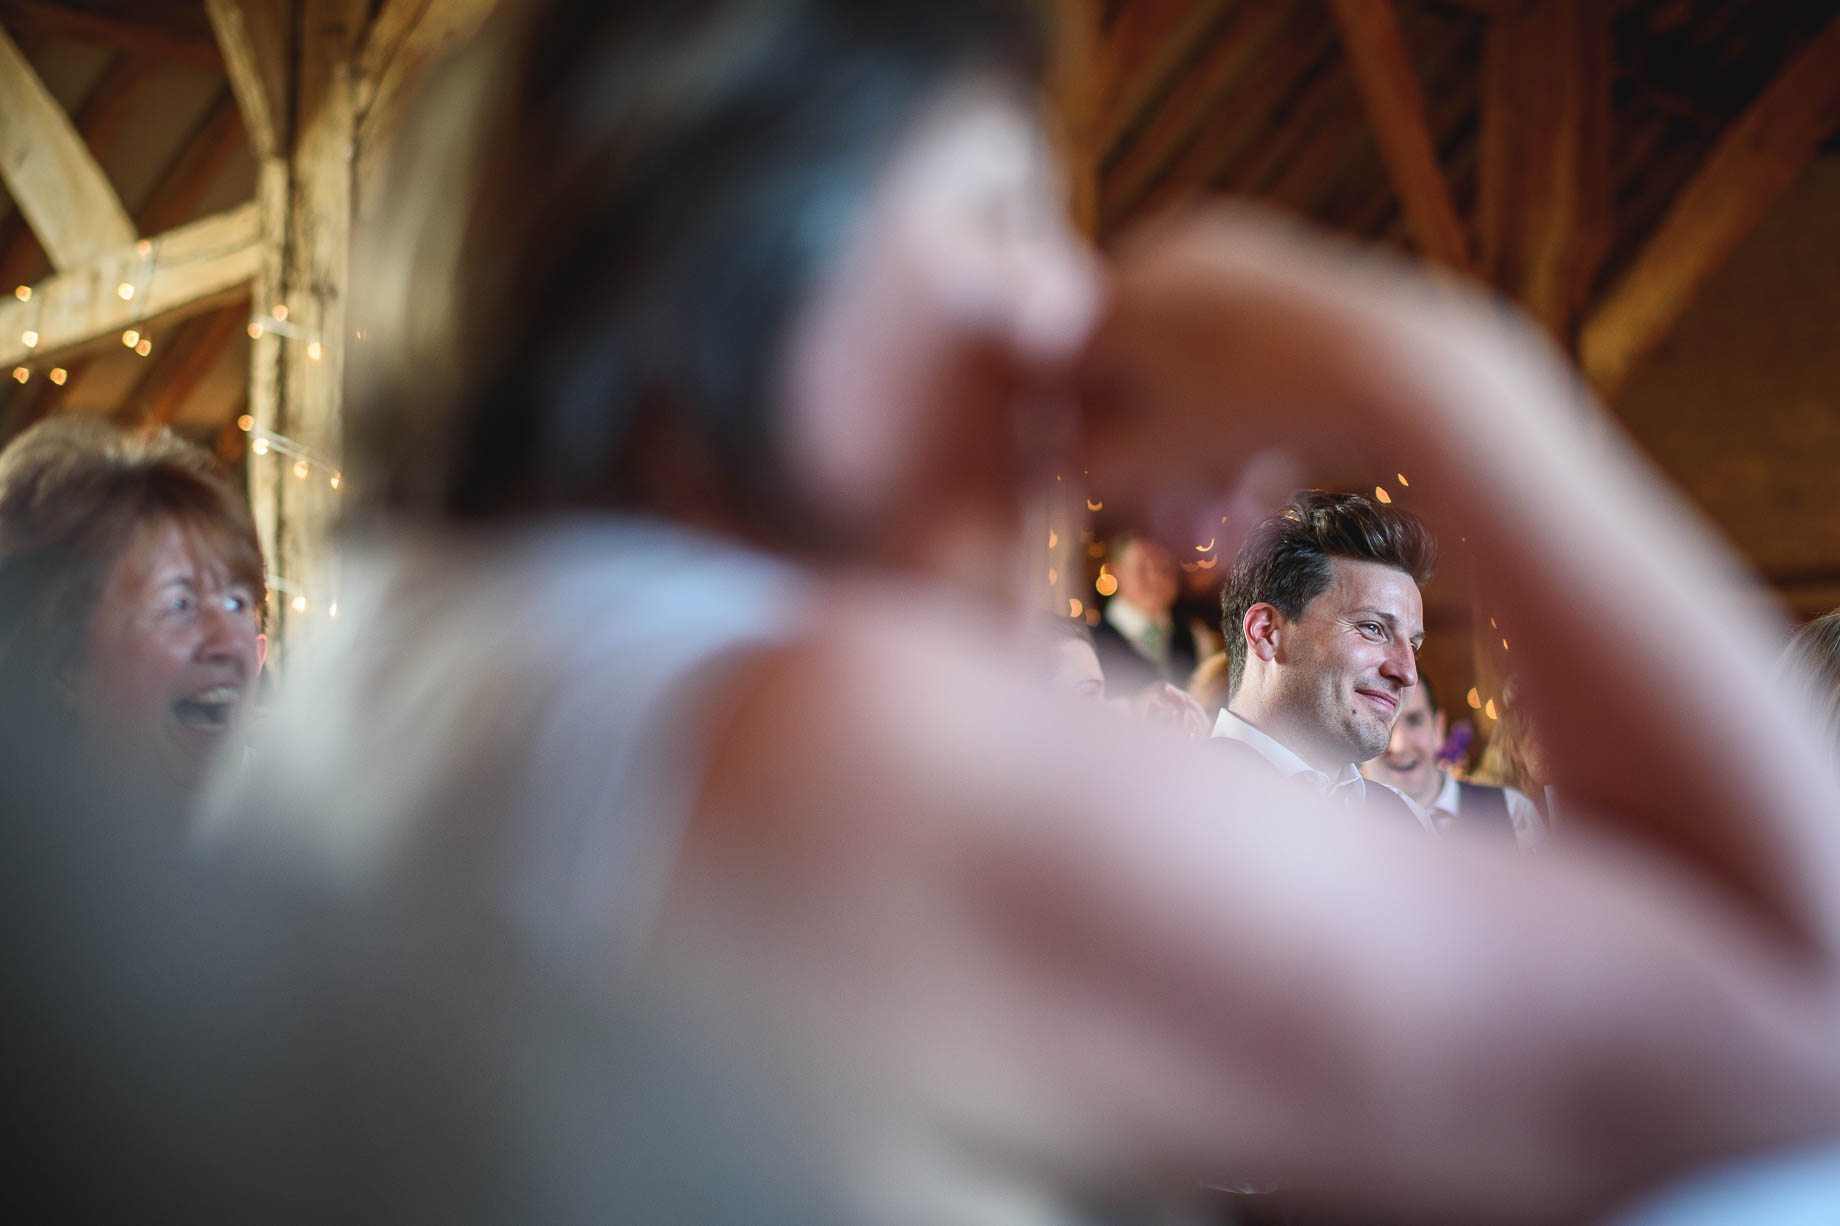 Bury Court Barn wedding photography by Guy Collier - Heather and Pat (144 of 170)